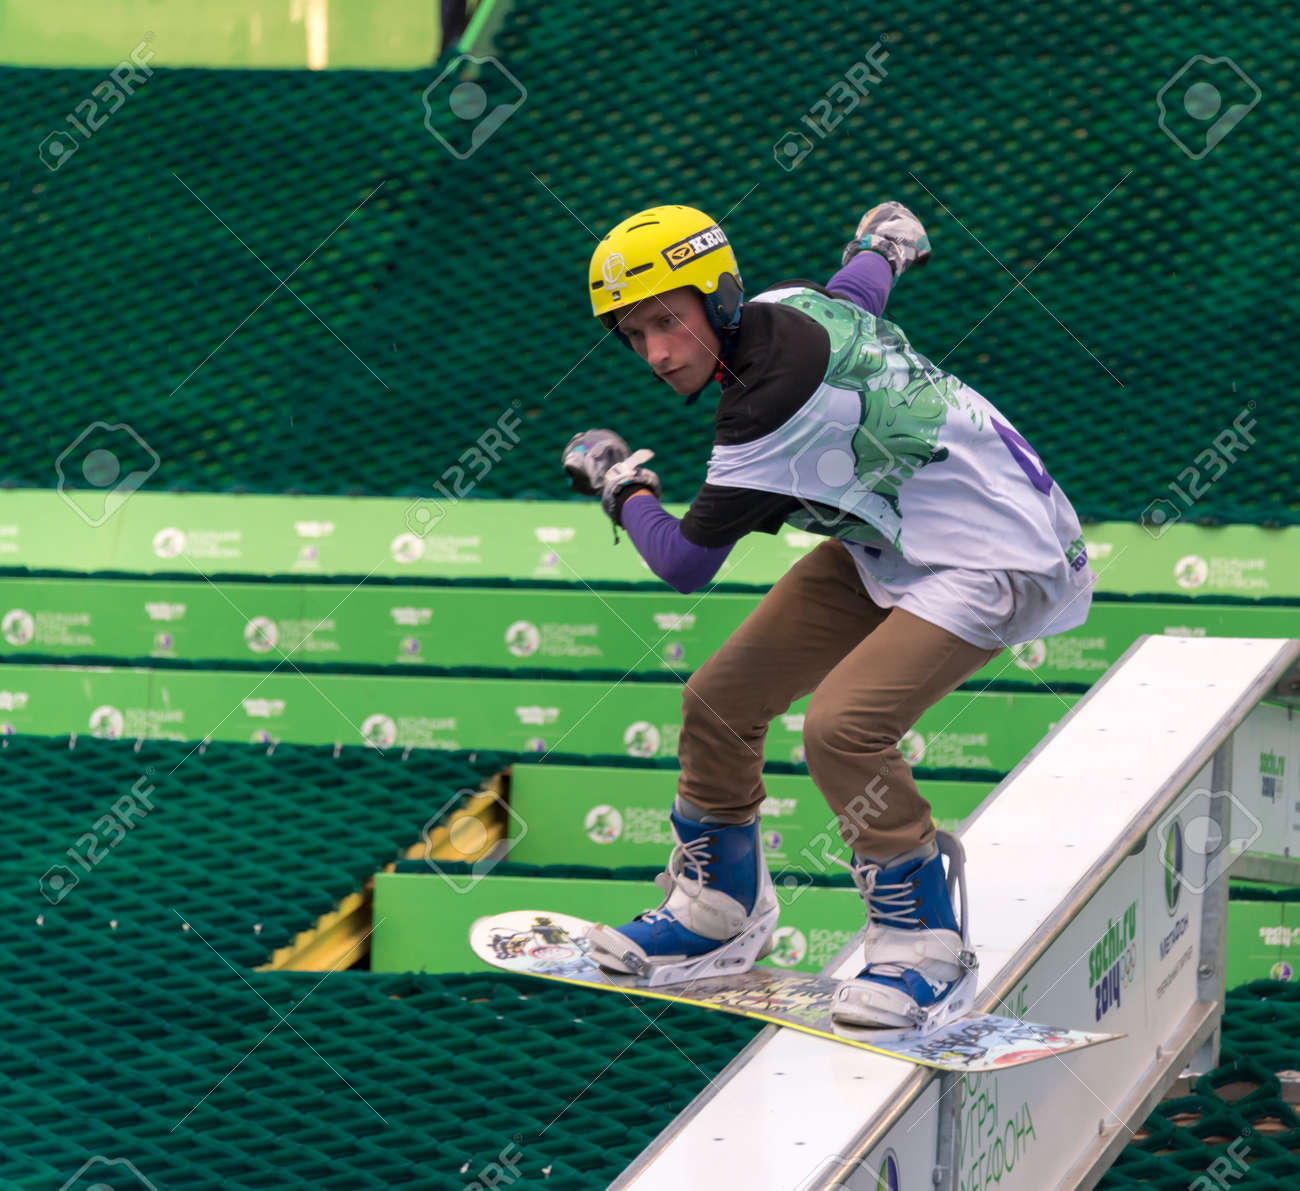 Rostov-on-Don, Russia, September 26, 2013 - The athlete jumps on a snowboard on a holiday company Megafon September 14, 2013 in Rostov-on-Don Stock Photo - 22202489